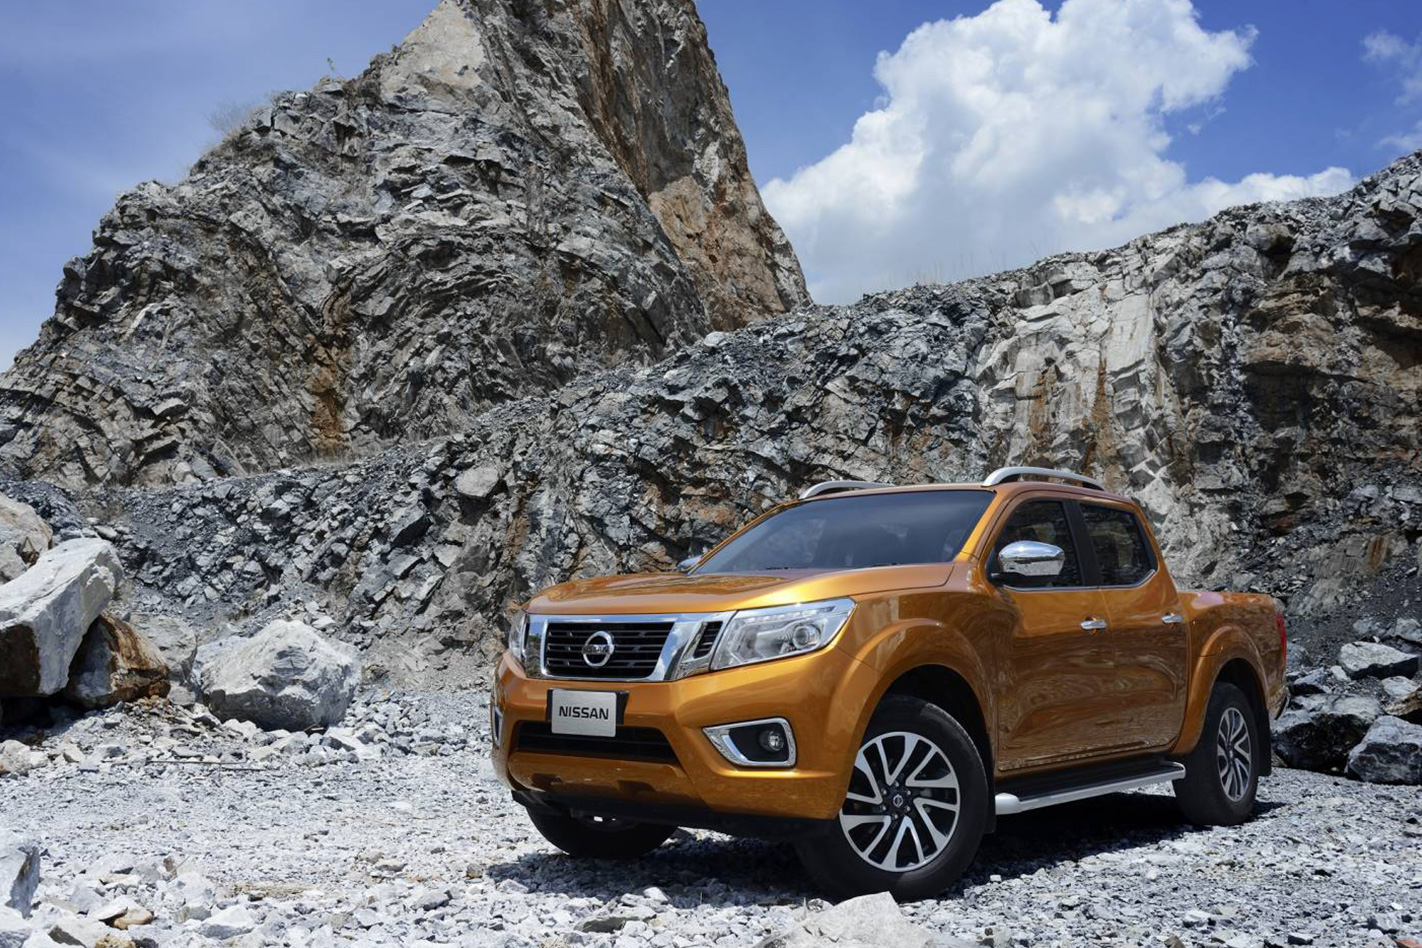 2018 nissan y62. perfect nissan updated navara np300 u201c for 2018 nissan y62 d